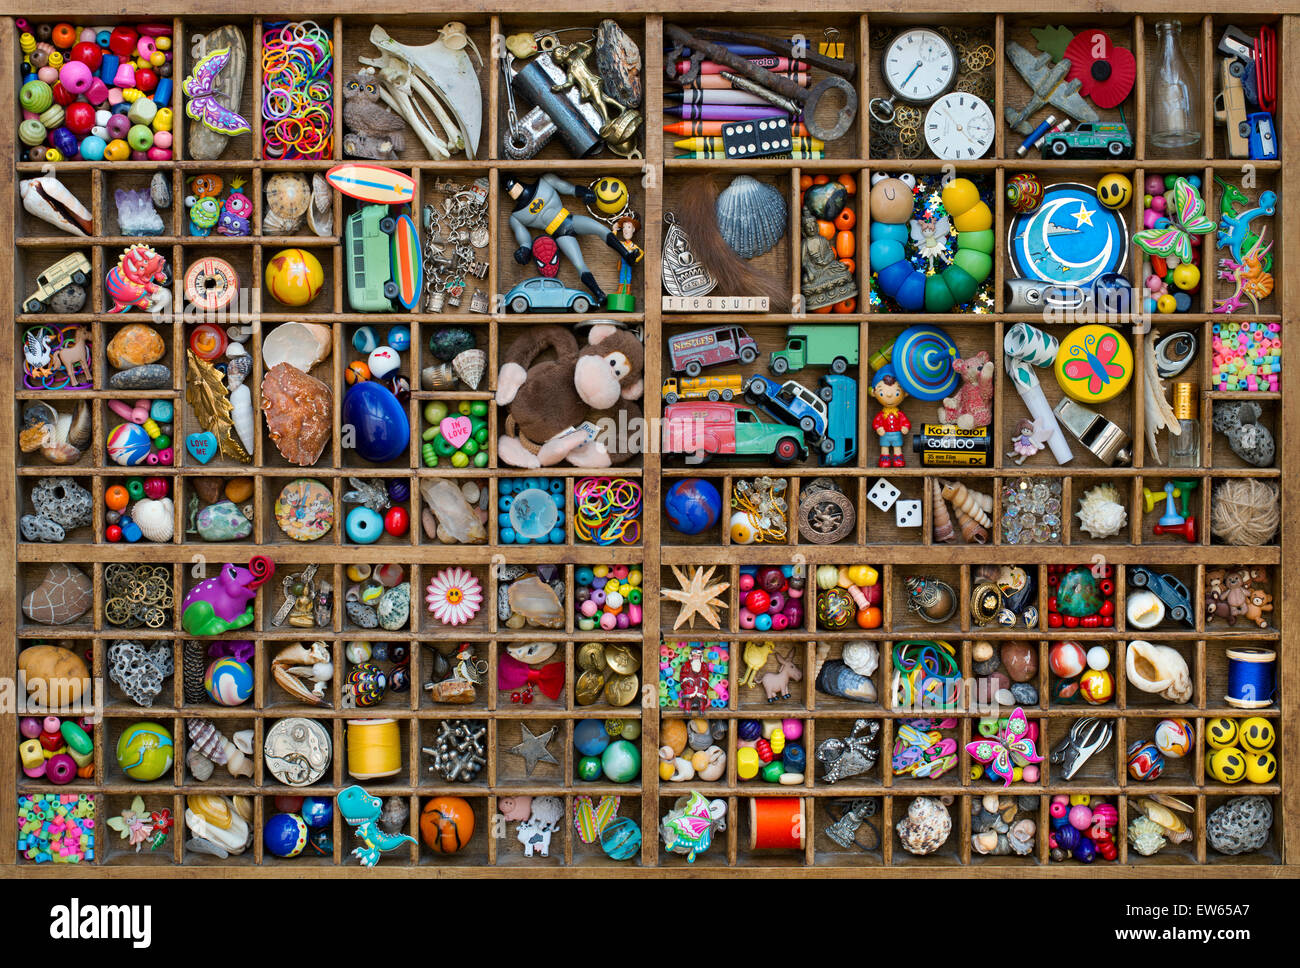 Wooden tray of childrens toys and a treasure trove of small collectable items - Stock Image